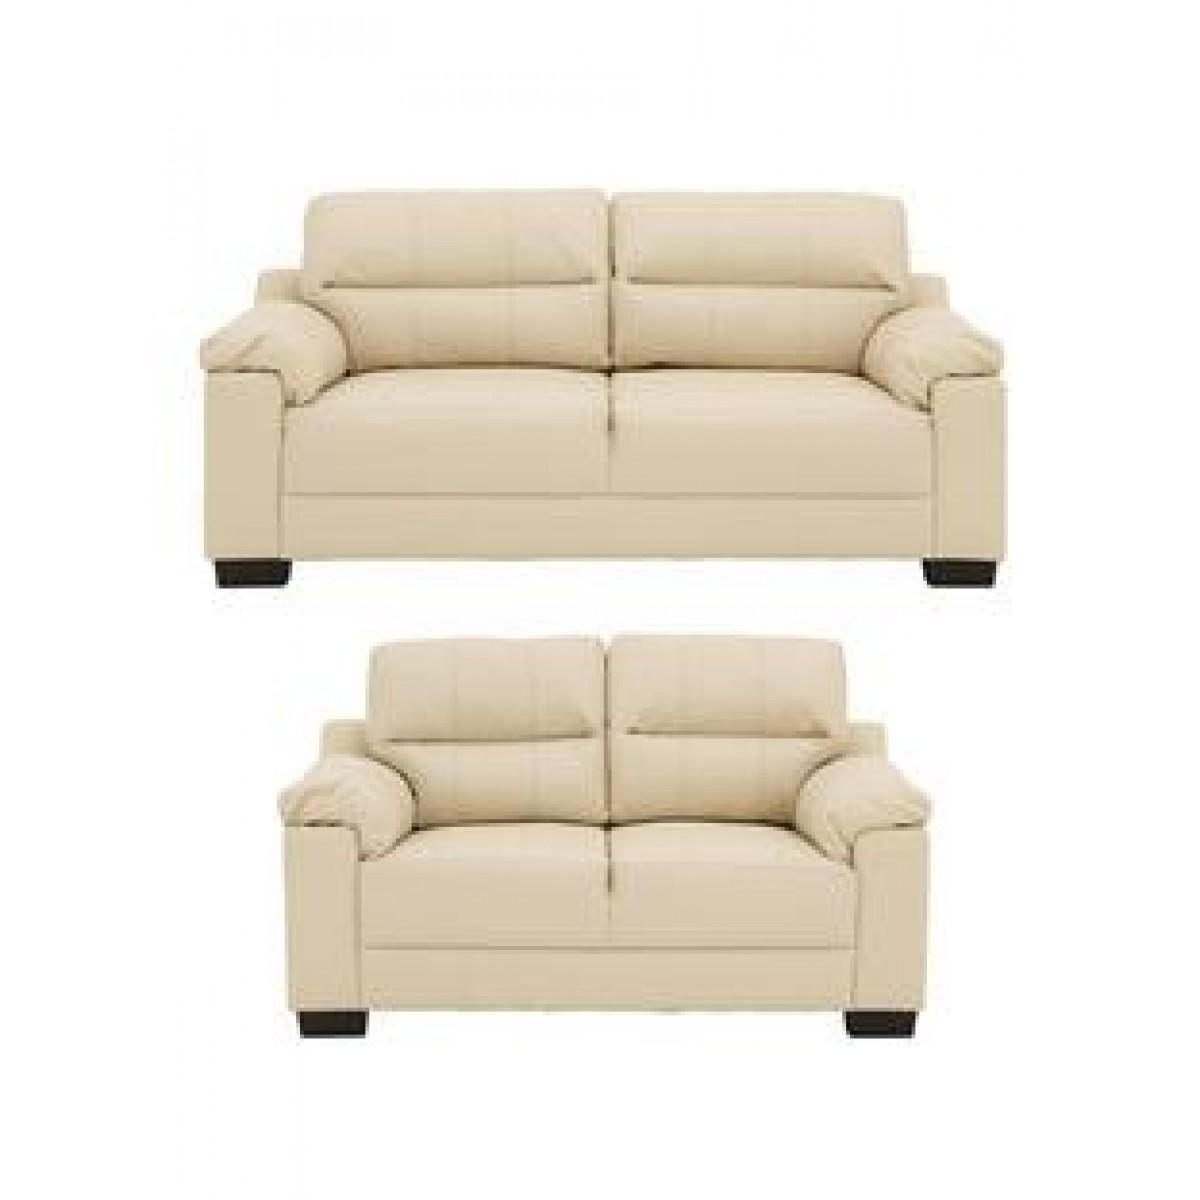 Saskia 3 Seater Plus 2 Seater Sofa Set – Furnico Village Regarding 2 Seater Sofas (View 16 of 20)